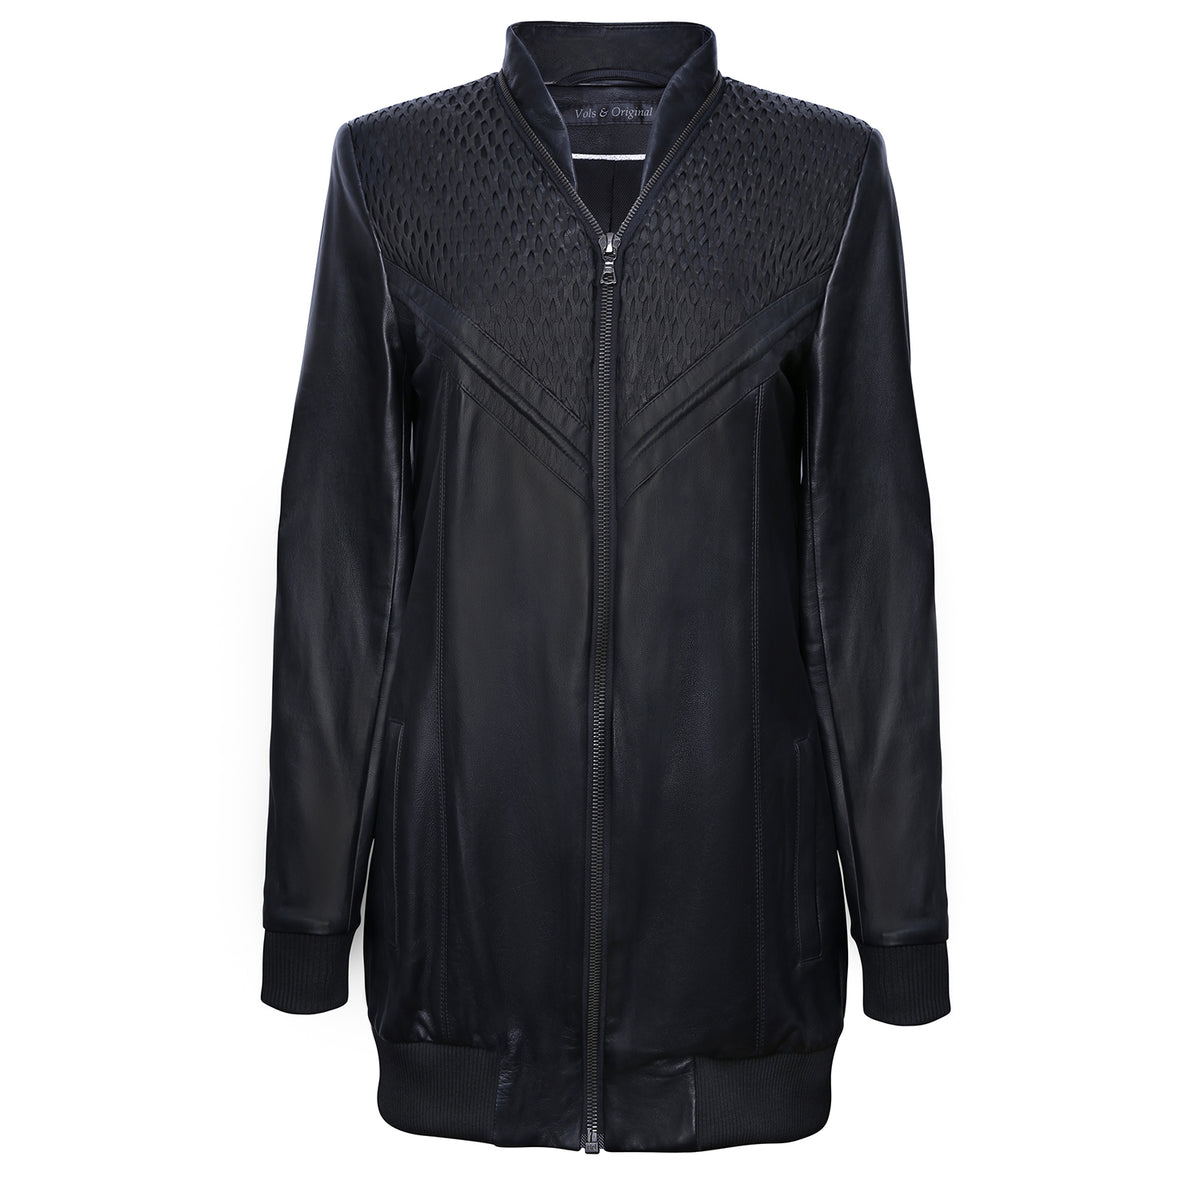 Leather Long Bomber Jacket  'Net' - VOLS & ORIGINAL